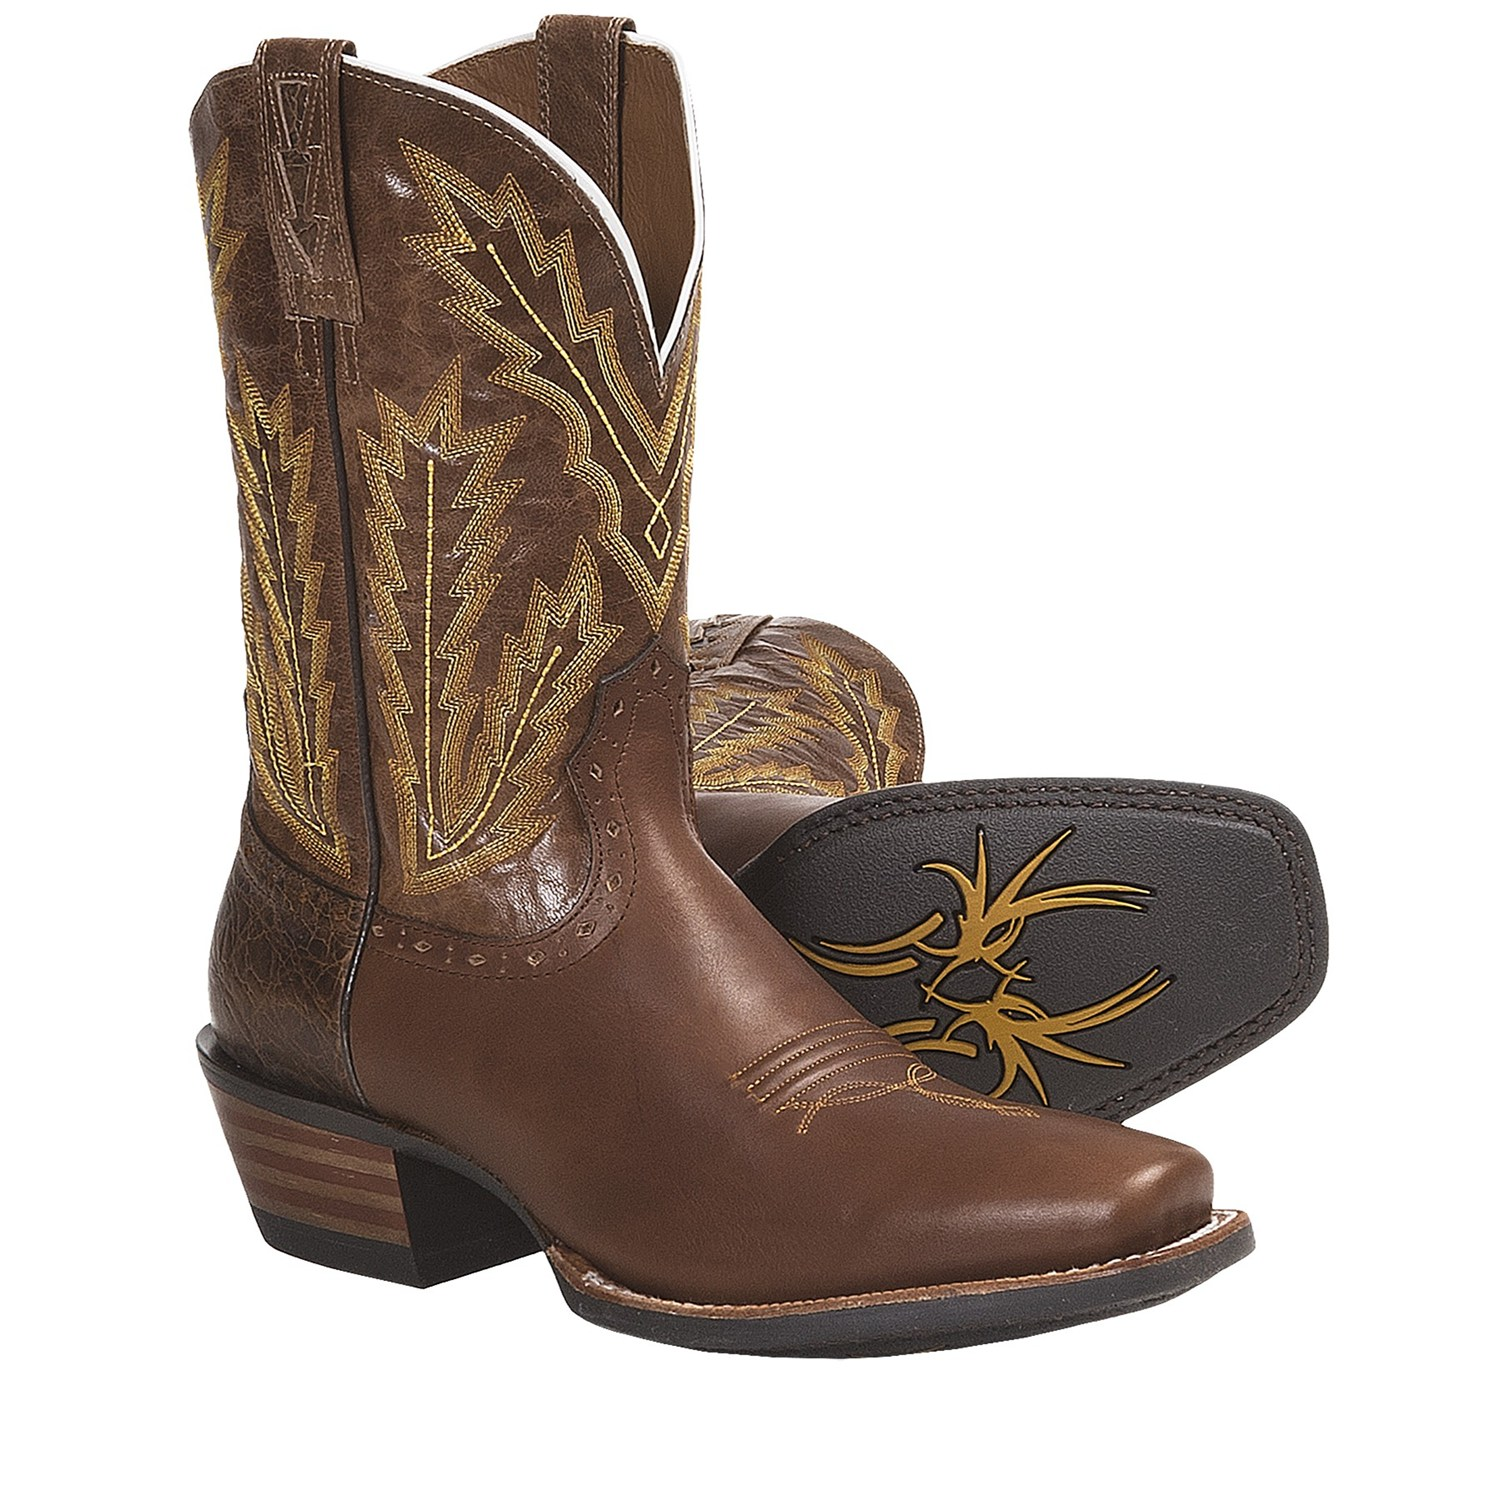 Ariat Boots For Cheap 07h4Csg0